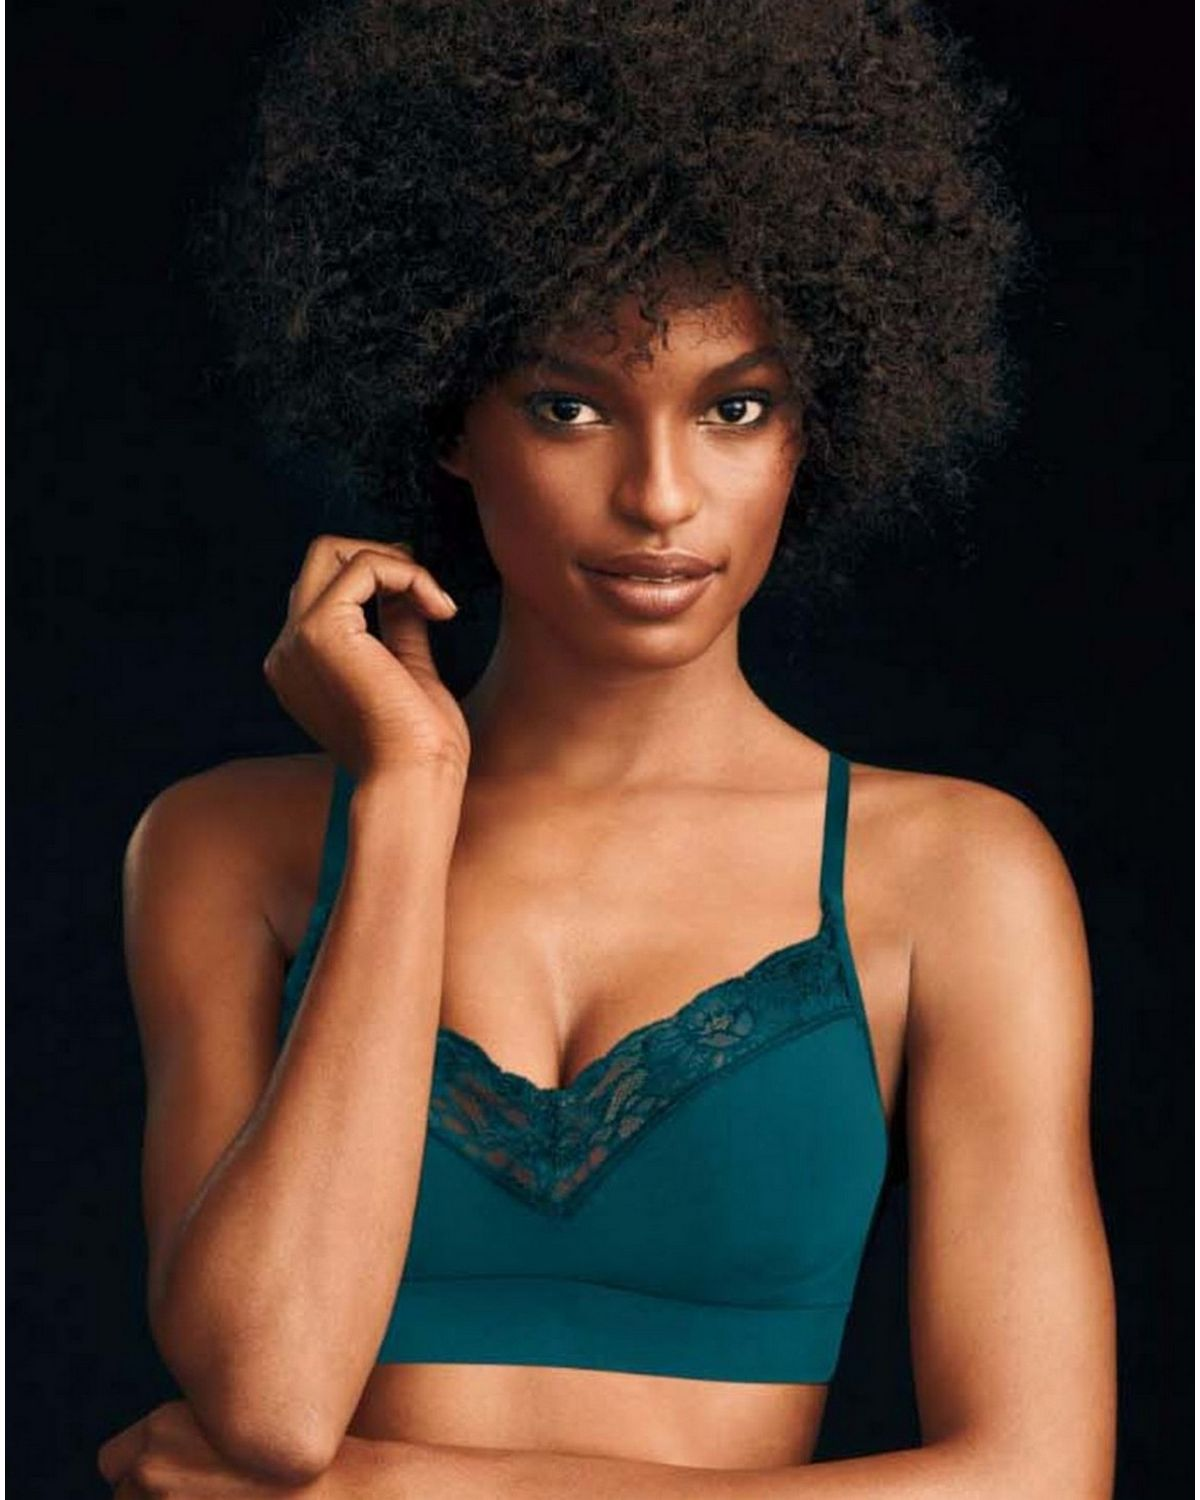 Maidenform DM7968 Seamless Lace T-Back Bra - Evening Teal - S DM7968